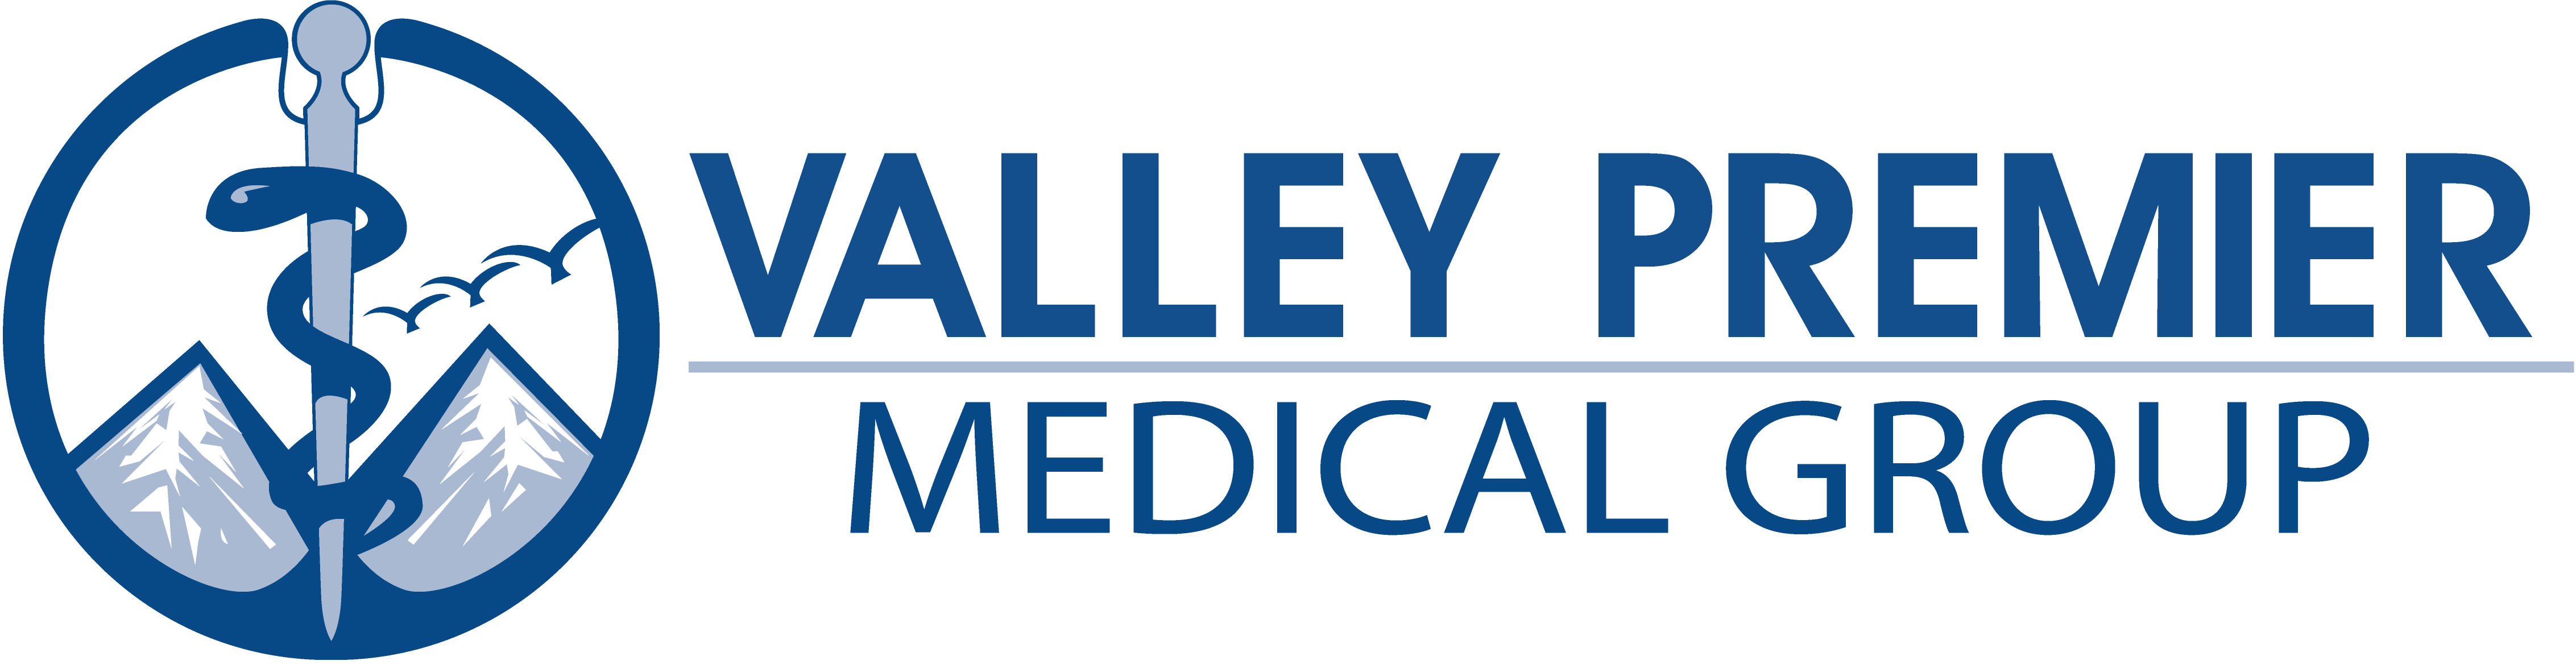 Valley Premier Medical Group